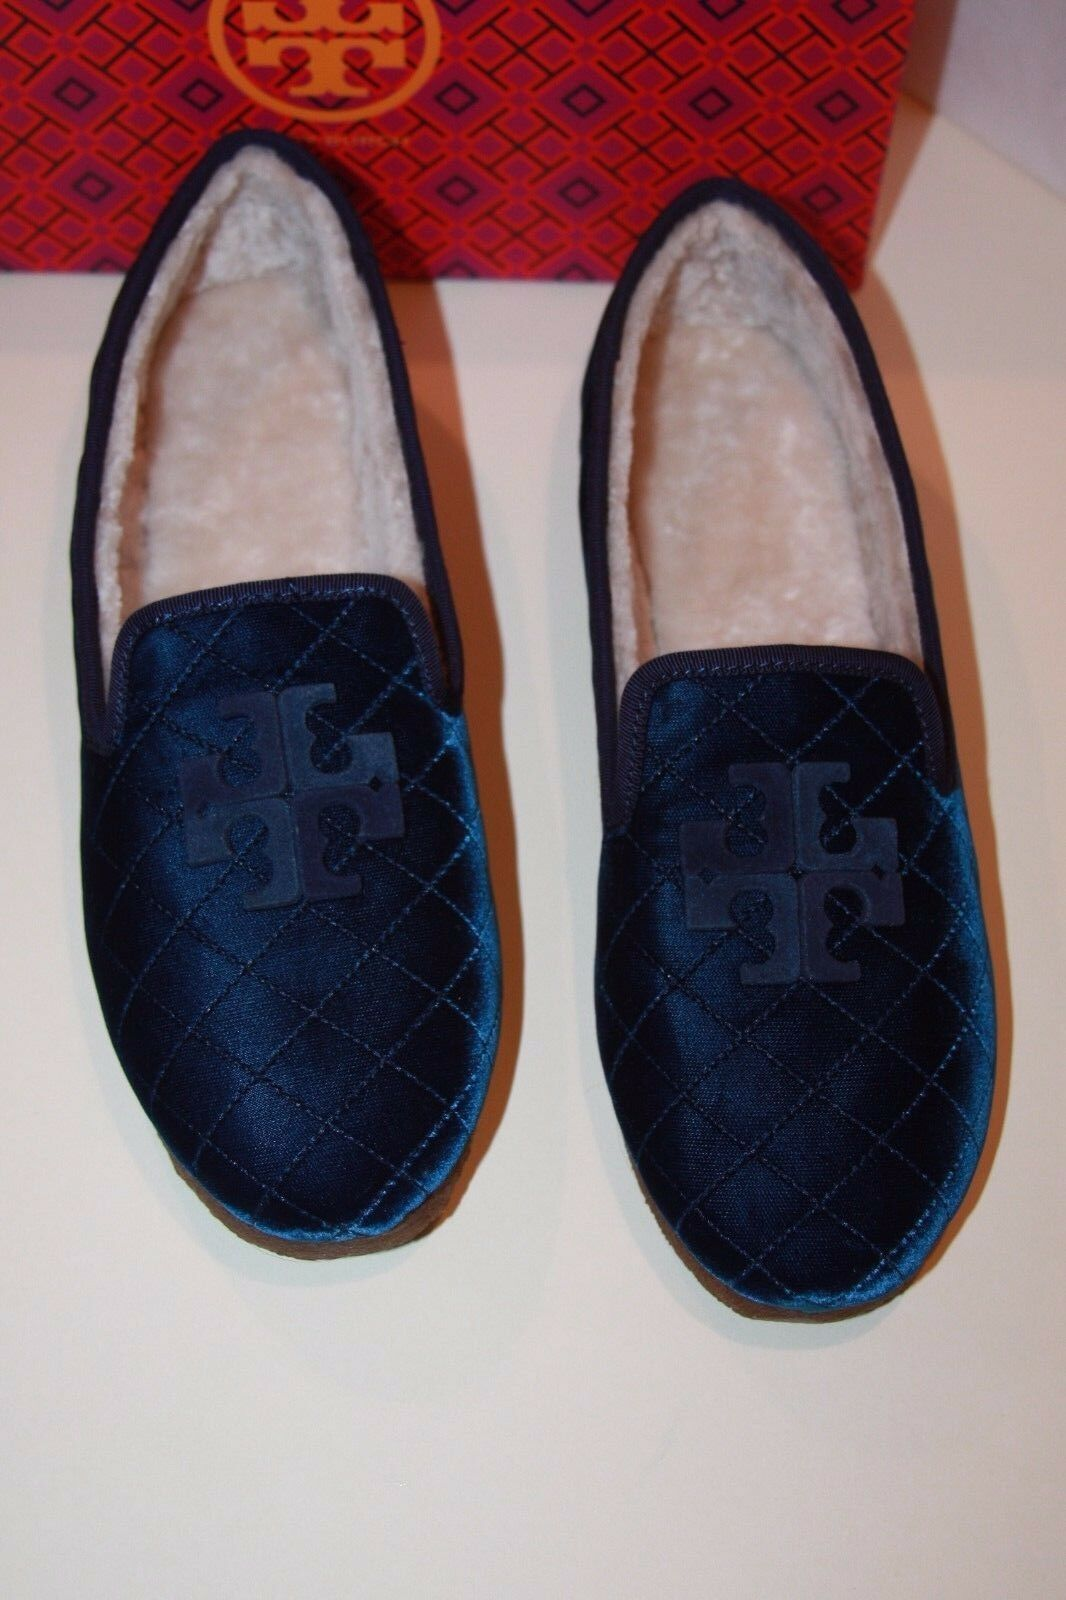 Tory Burch Blau Billy 2 Blau Burch Velvet Grosgrain Loafers  Damens's Größe 11 m c63169